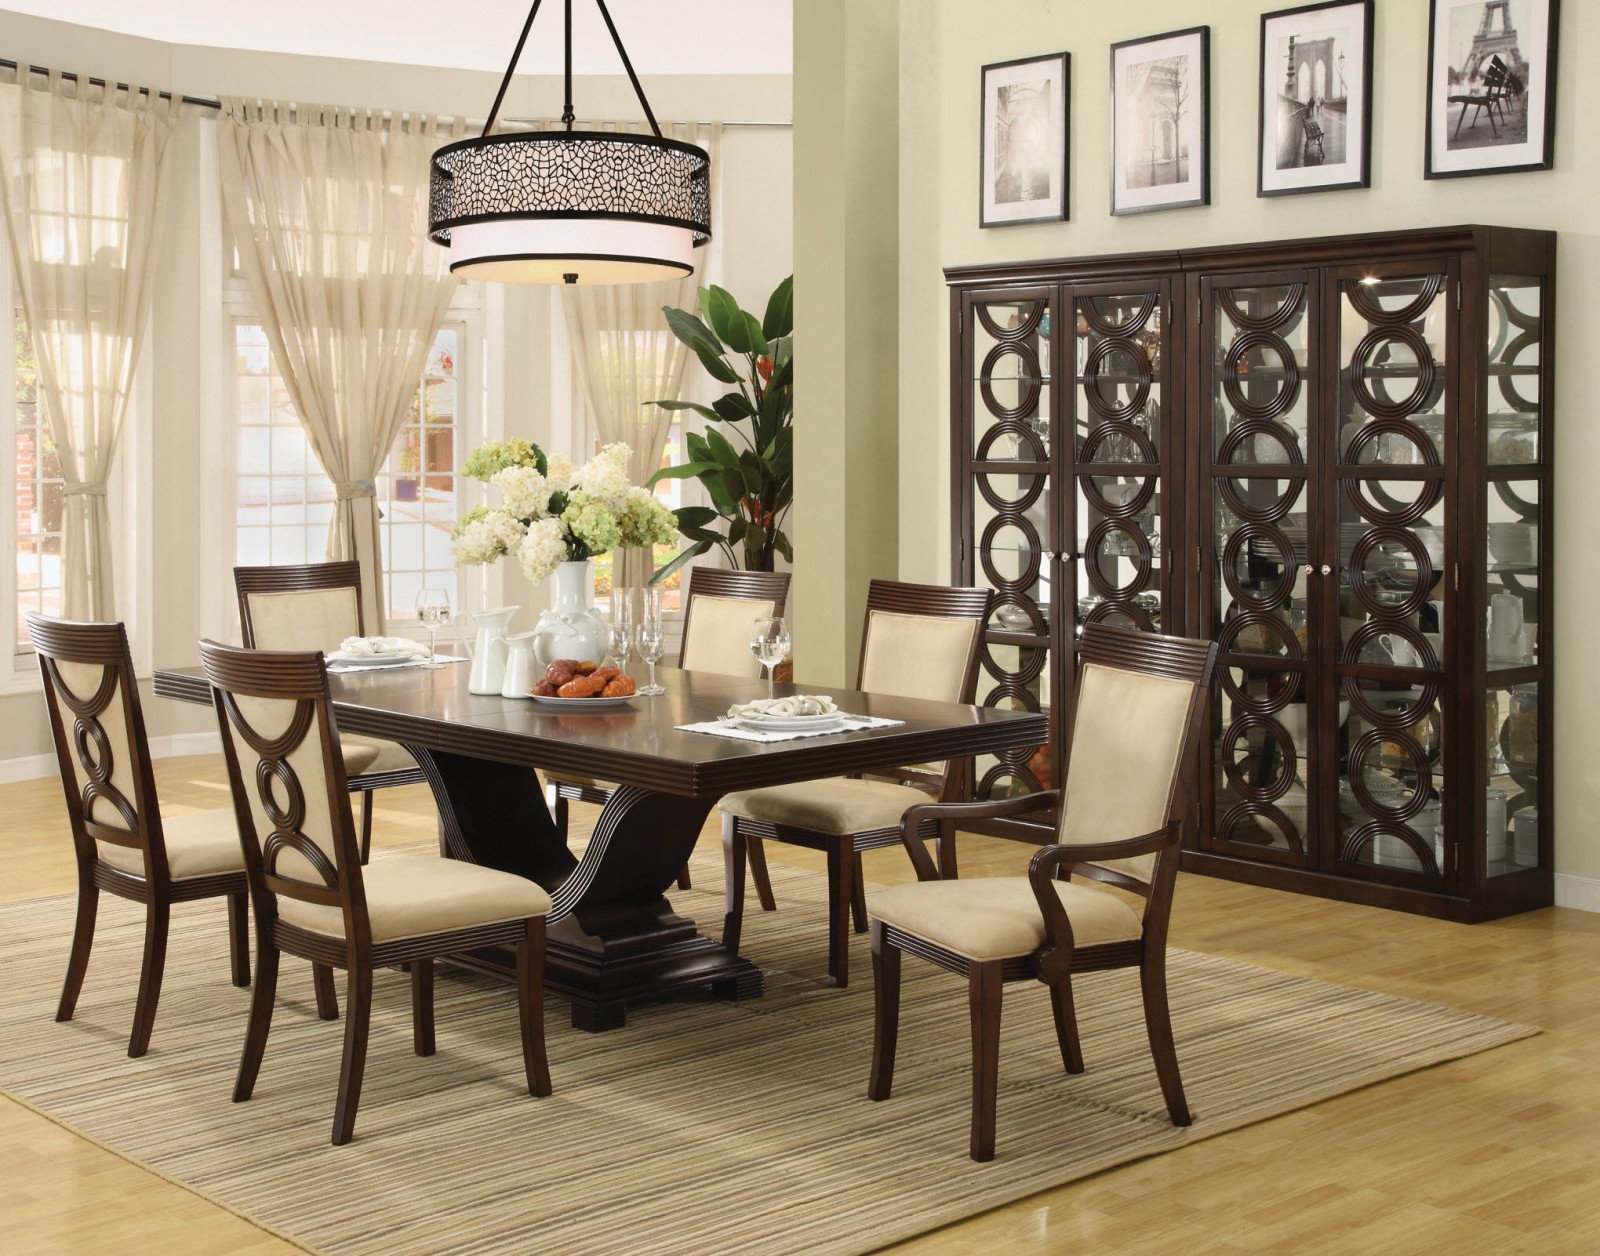 Interesting Dining Small Room Design With Chandelier Above Table Set